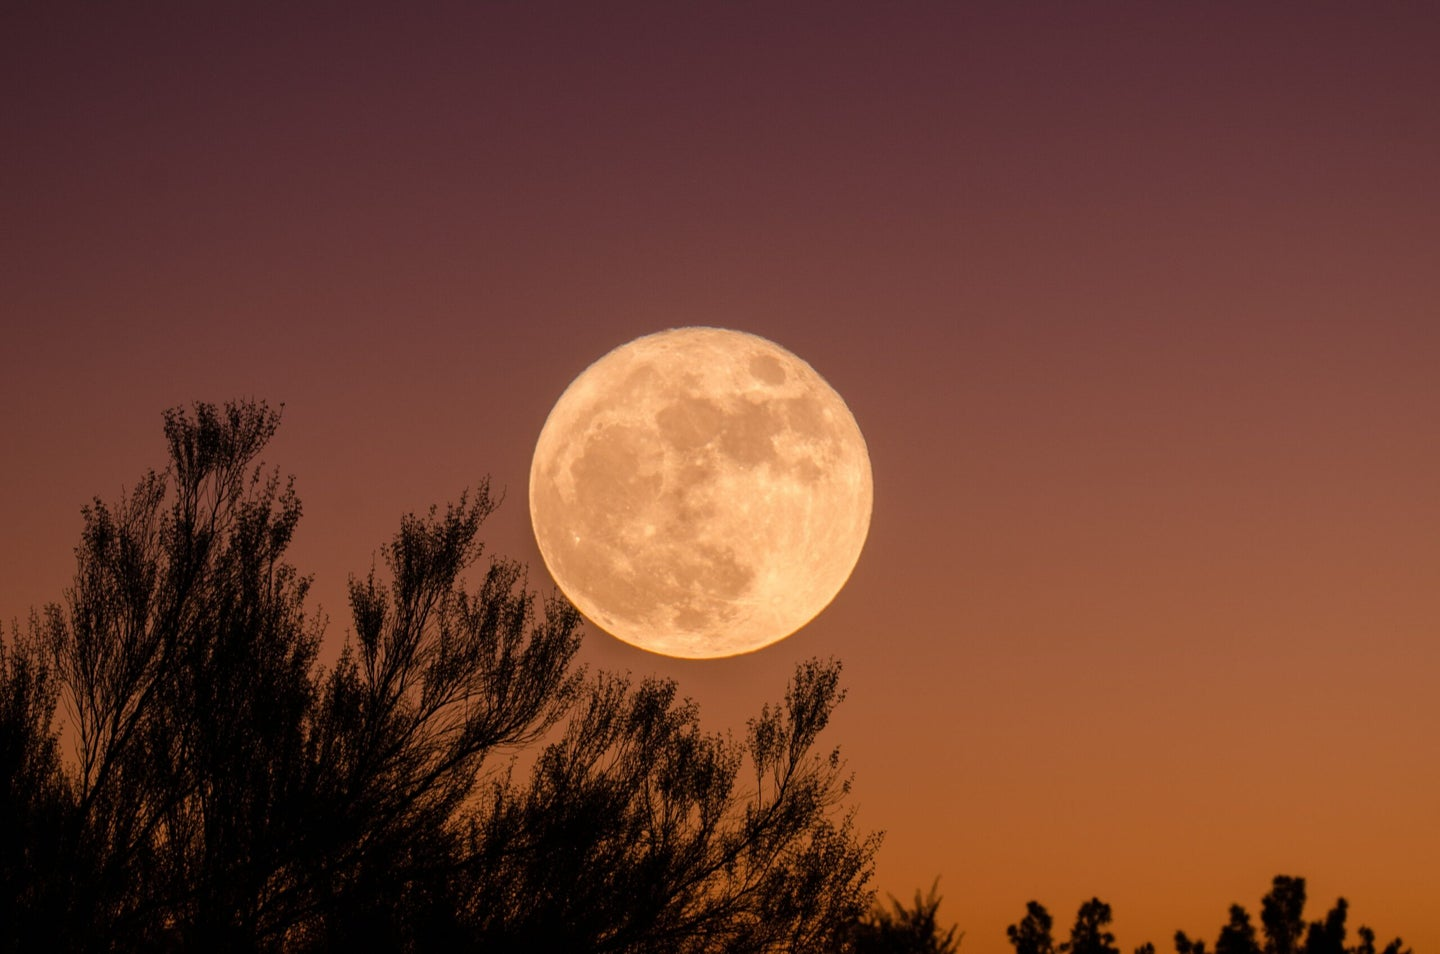 A large, yellow moon rises over the branches of a tree.